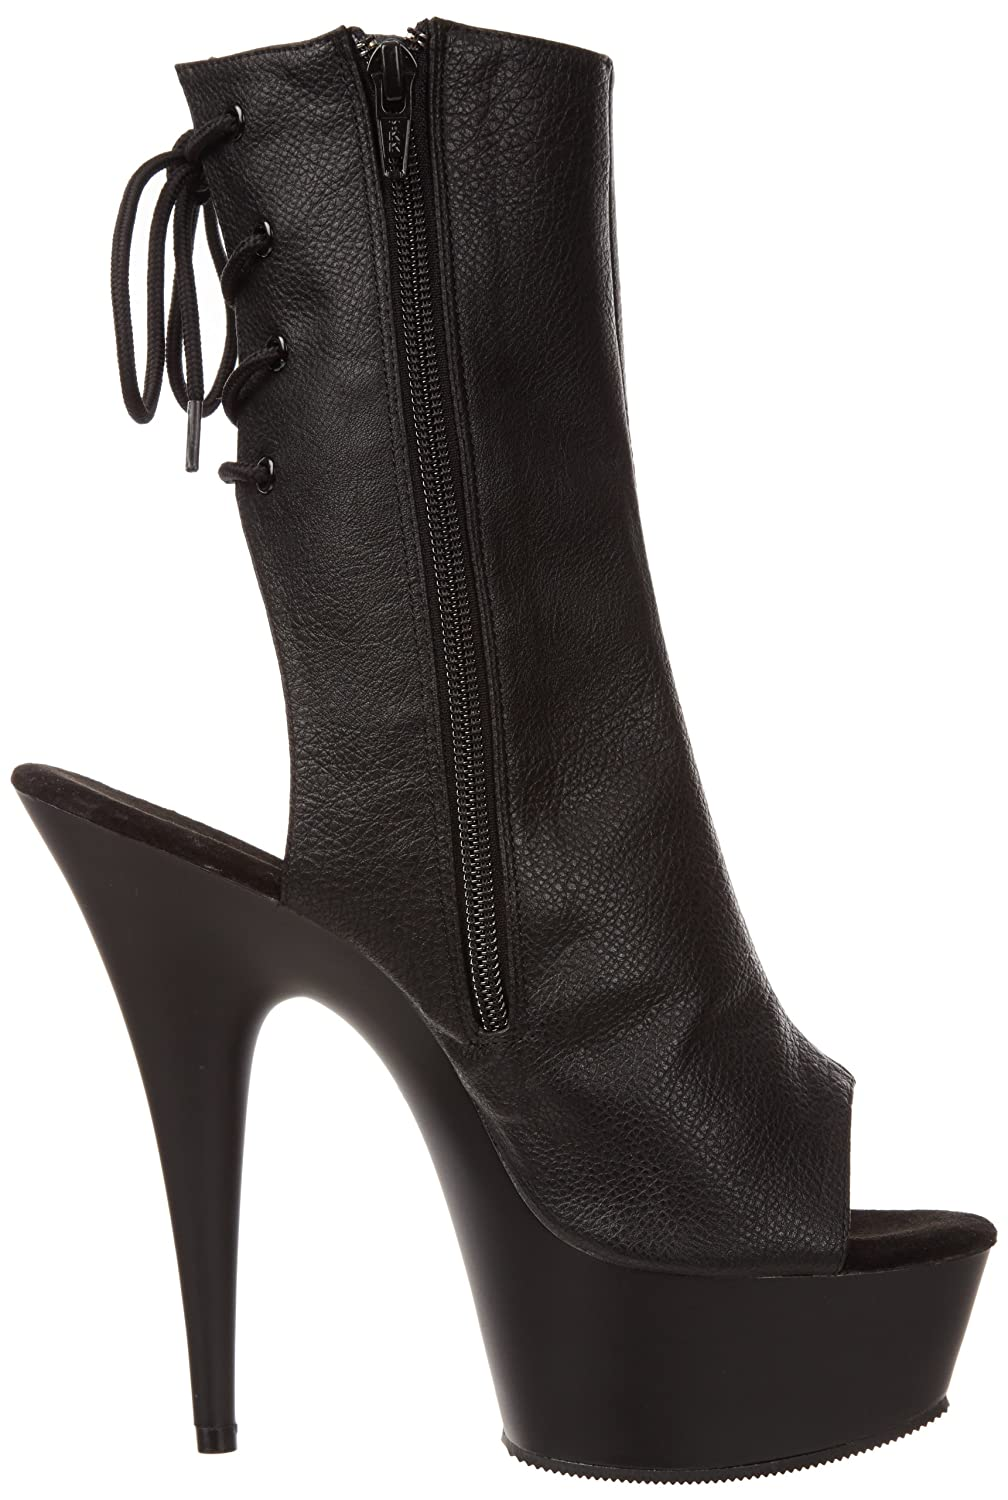 Pleaser Women's Delight-1018 Boot B003D0VGZM 14 B(M) US|Black Polyurethane/Black